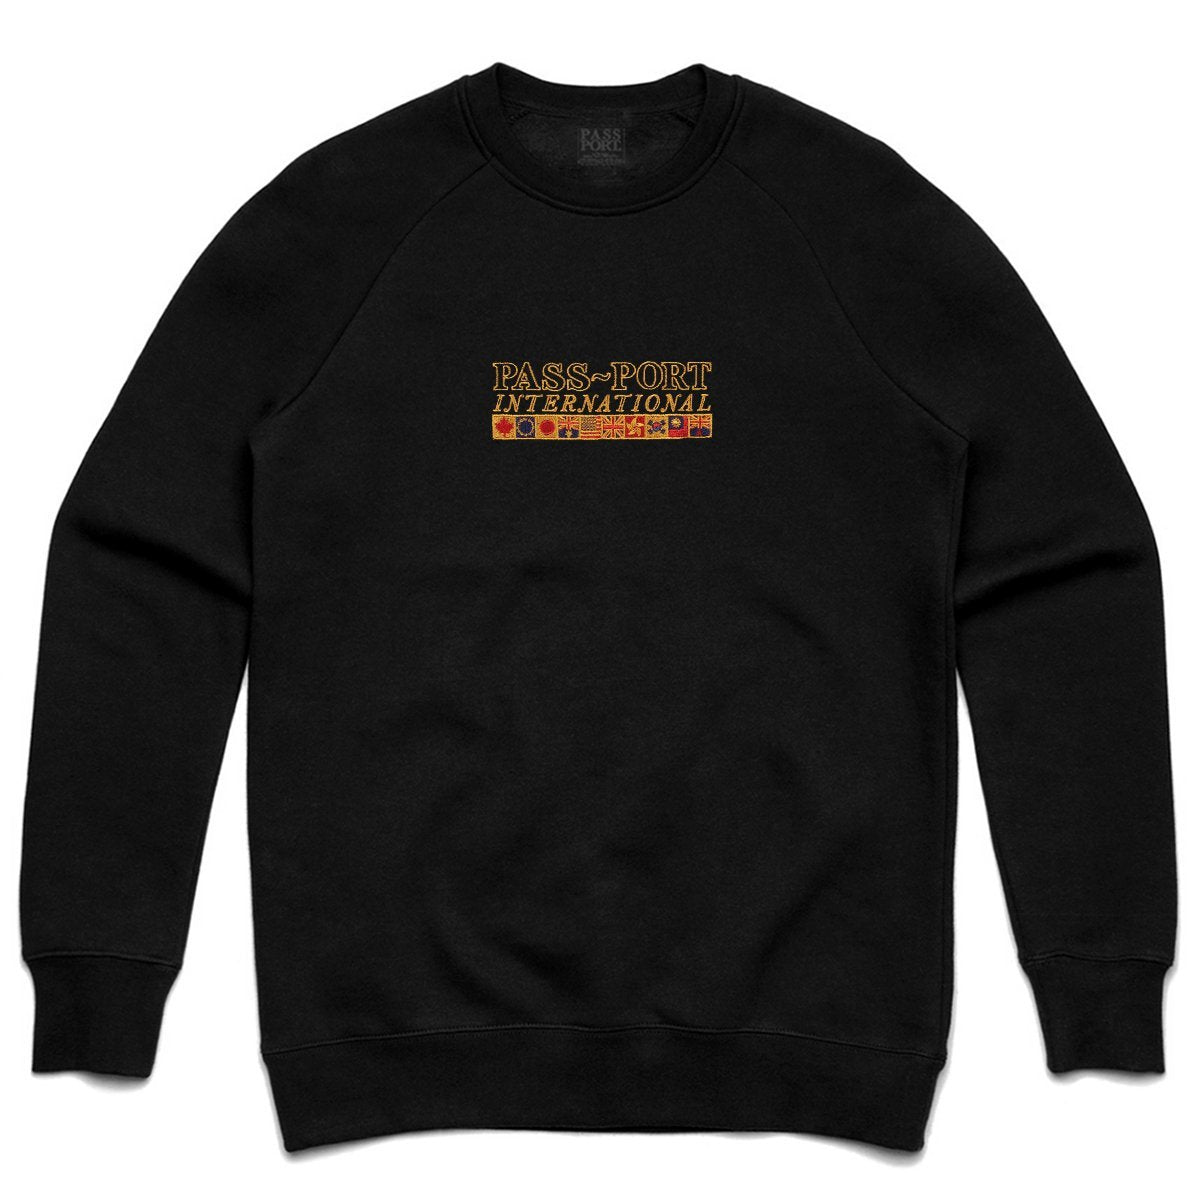 PASSPORT INTERNATIONAL EMBROIDERY CREWNECK